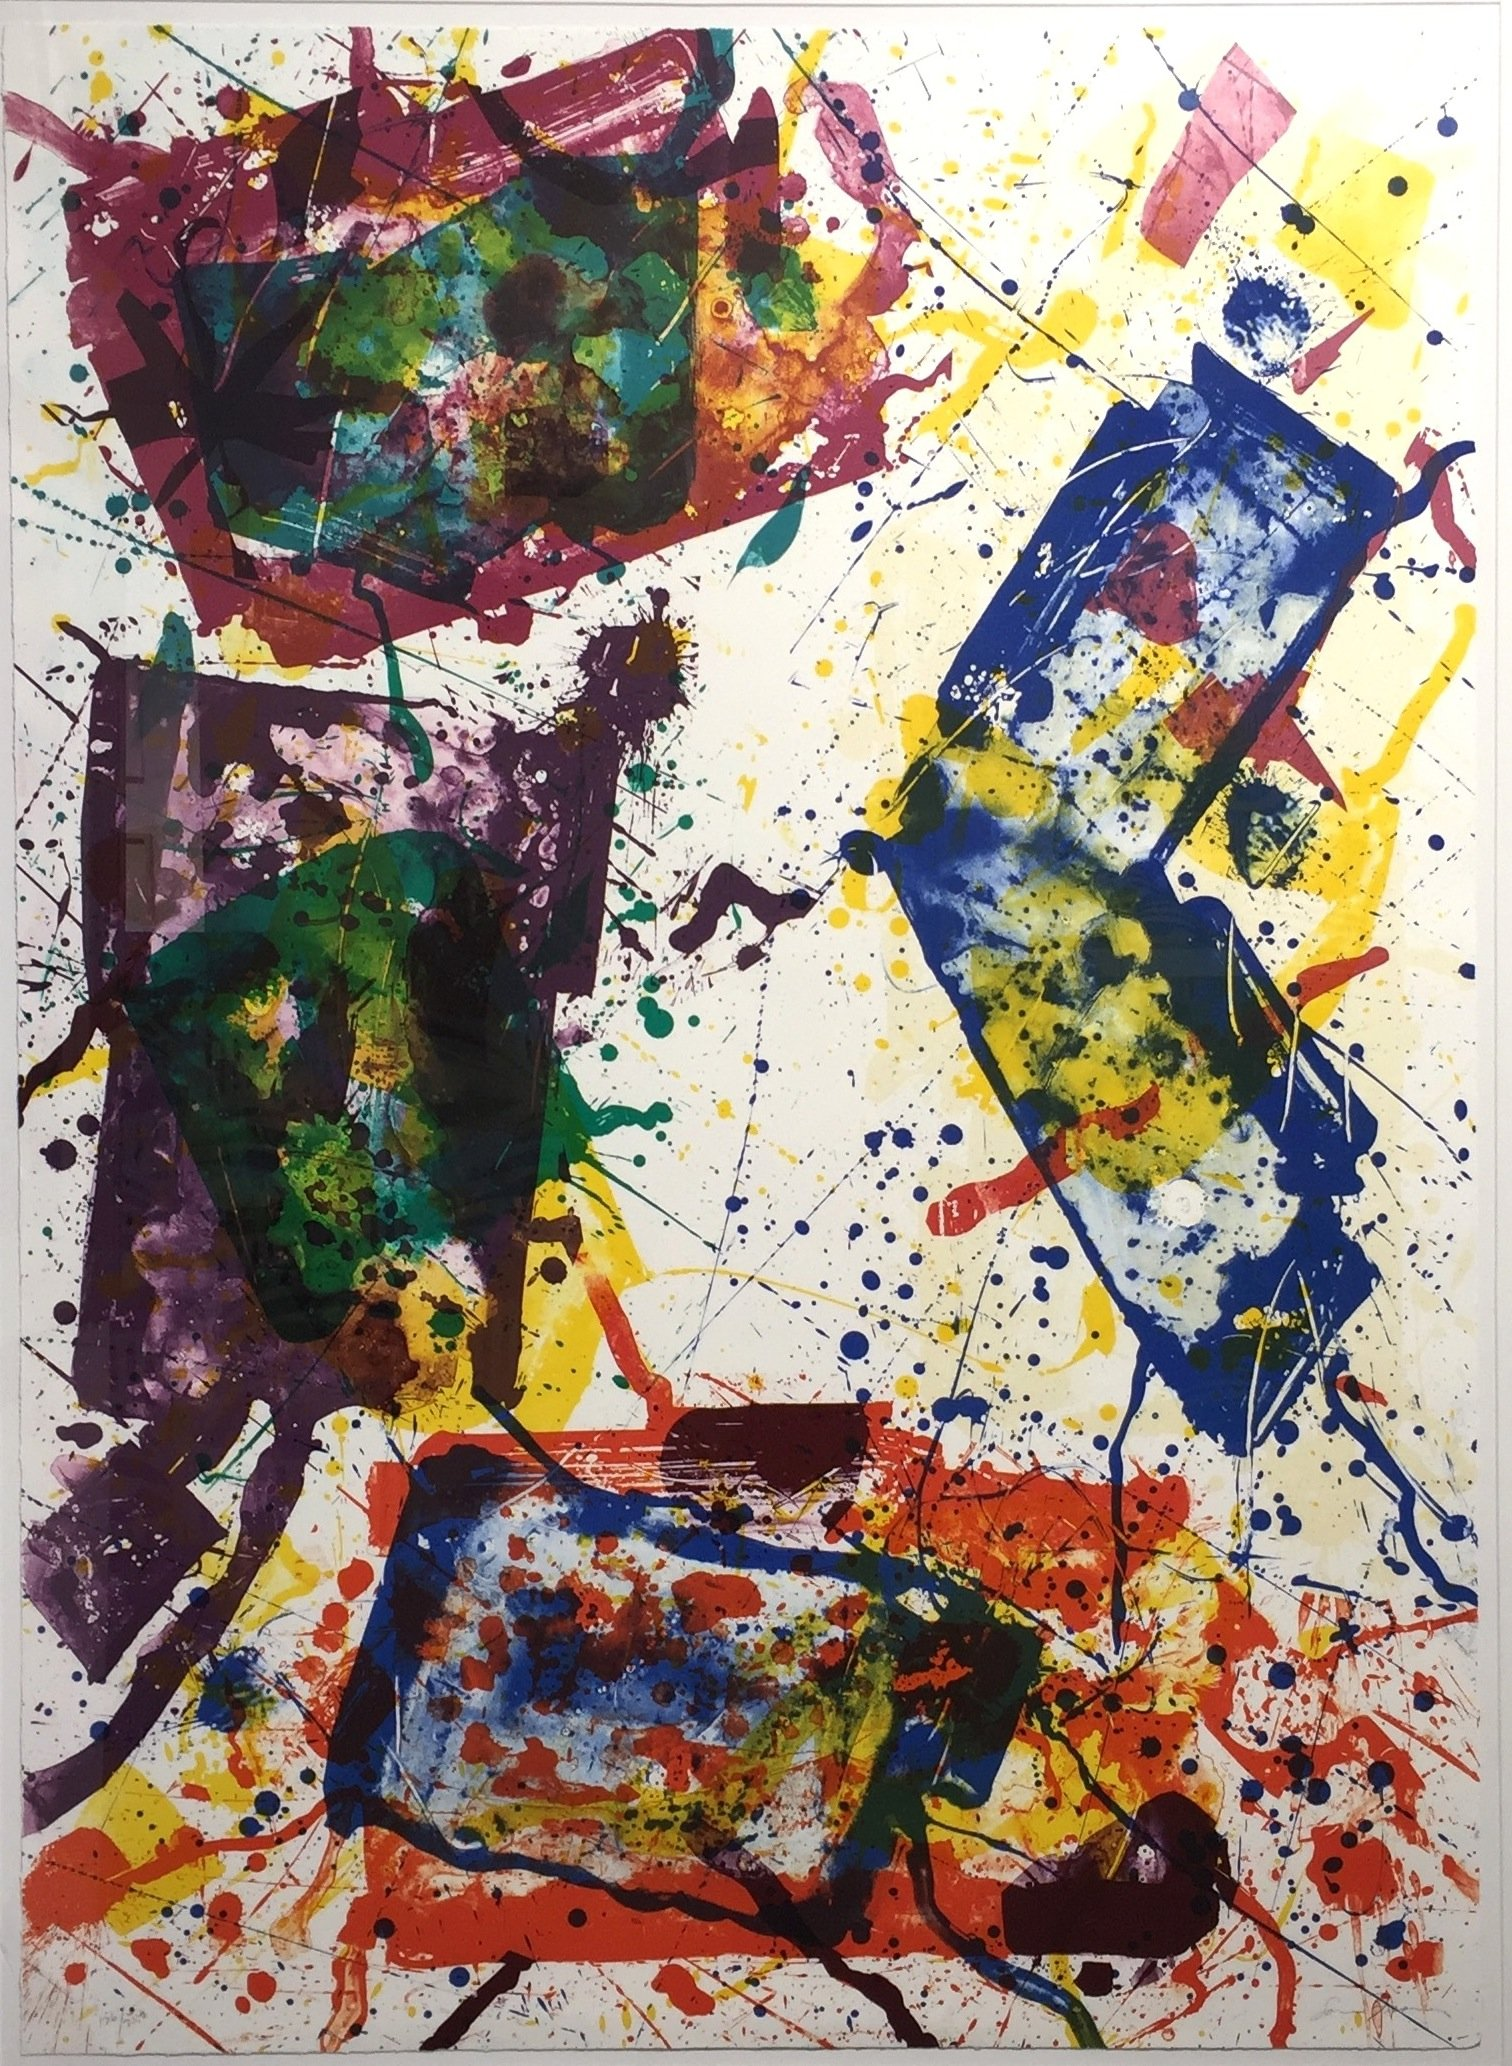 Untitled (Lembark 269) 1982 by Sam Francis